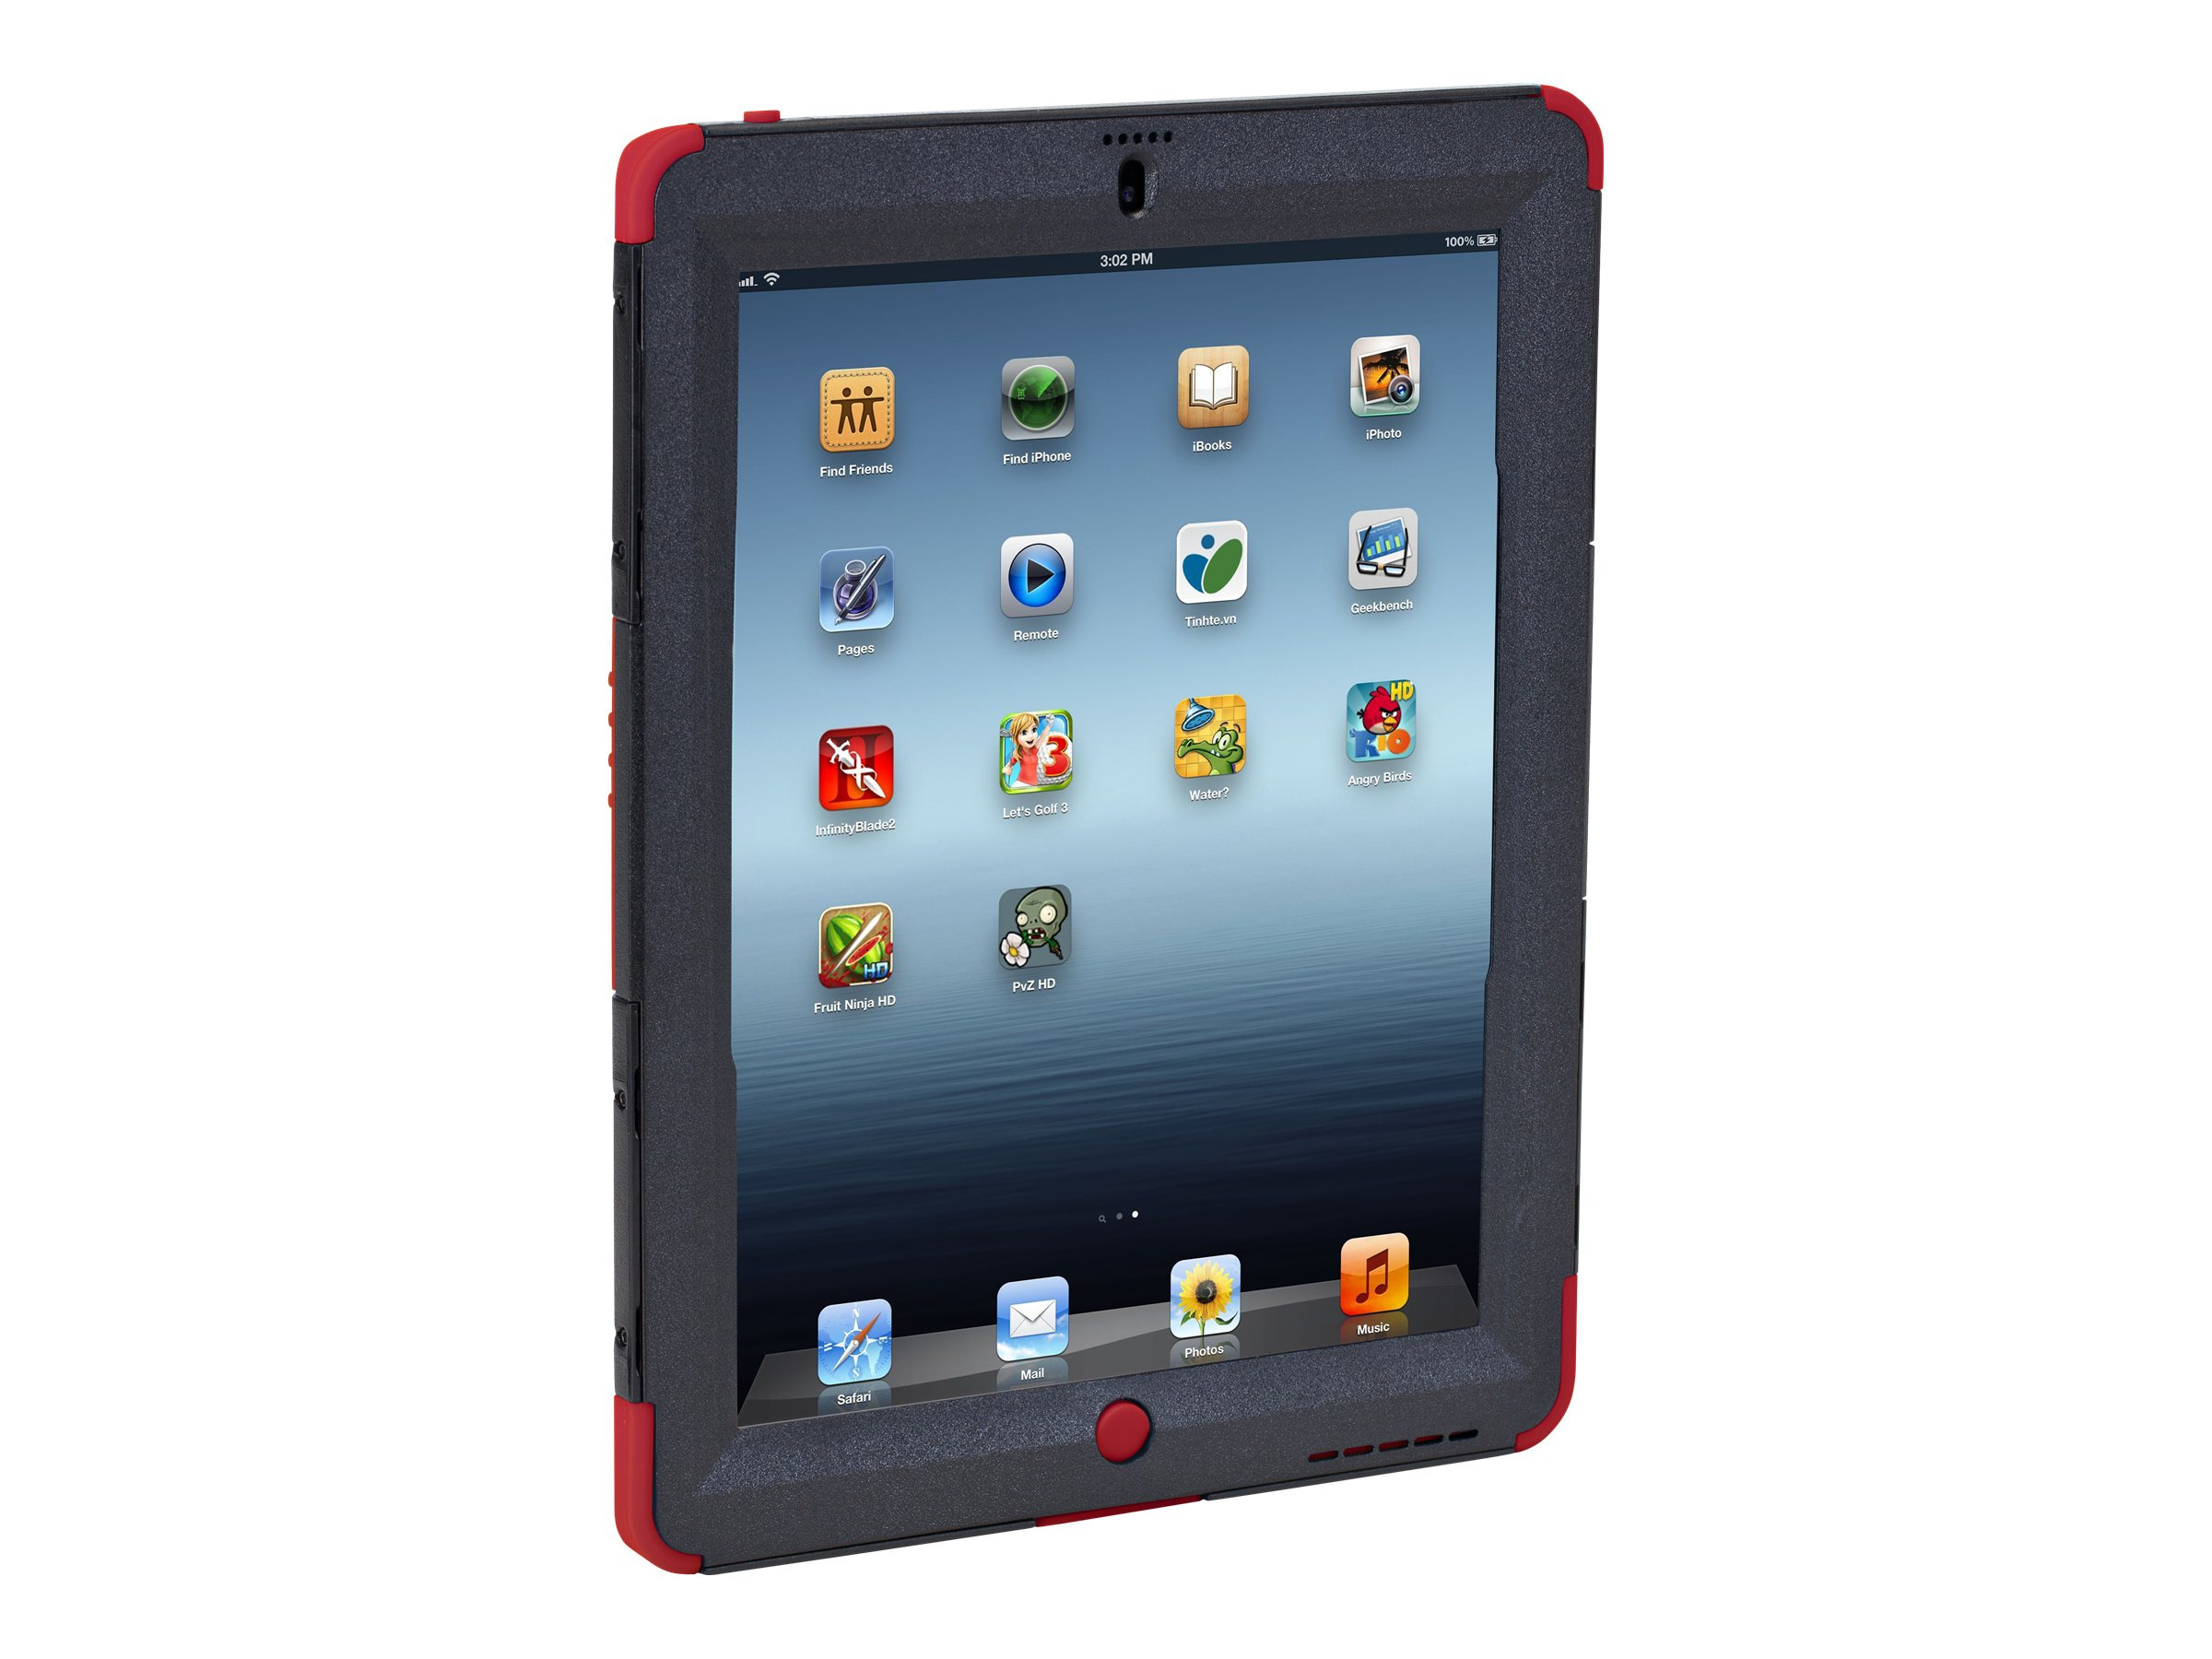 Targus Rugged Max Pro Safeport Case for iPad 3 4, Red, THD04403US